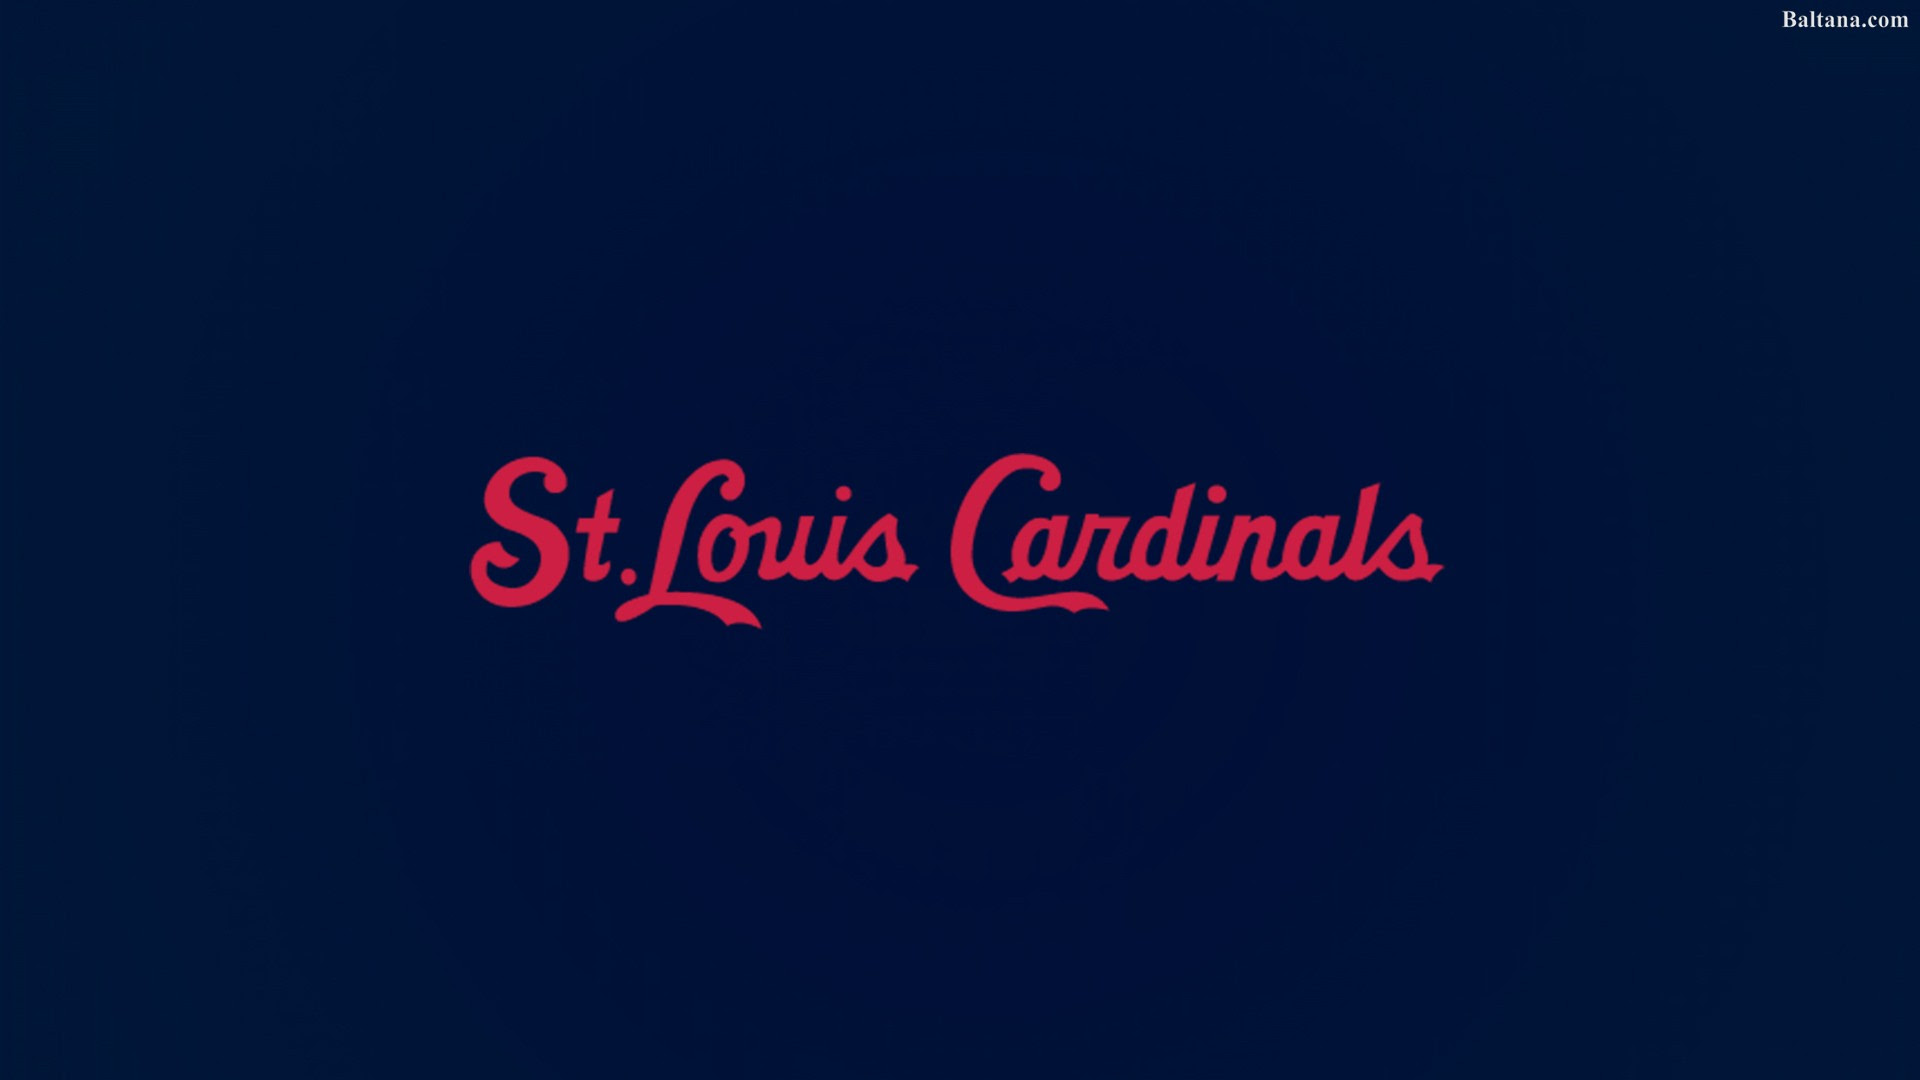 St Louis Cardinals Desktop Wallpaper 33334 Baltana